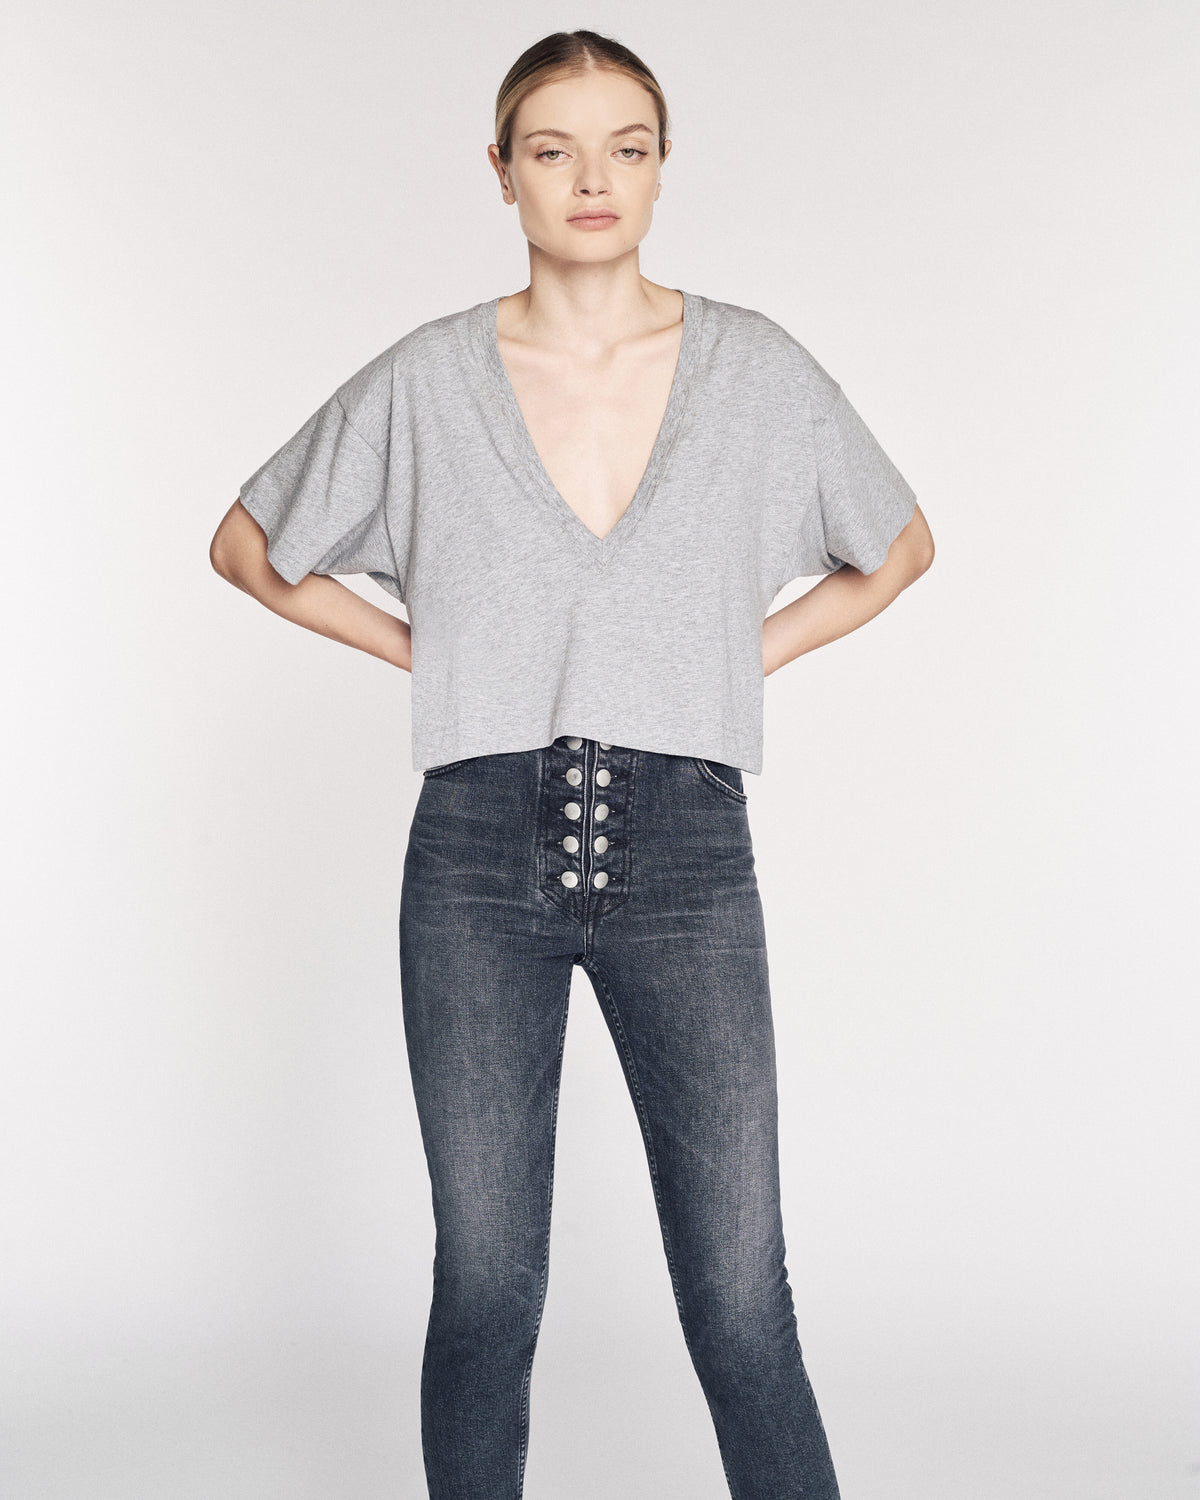 Can't Get Lower Cropped V neck in Heather Grey